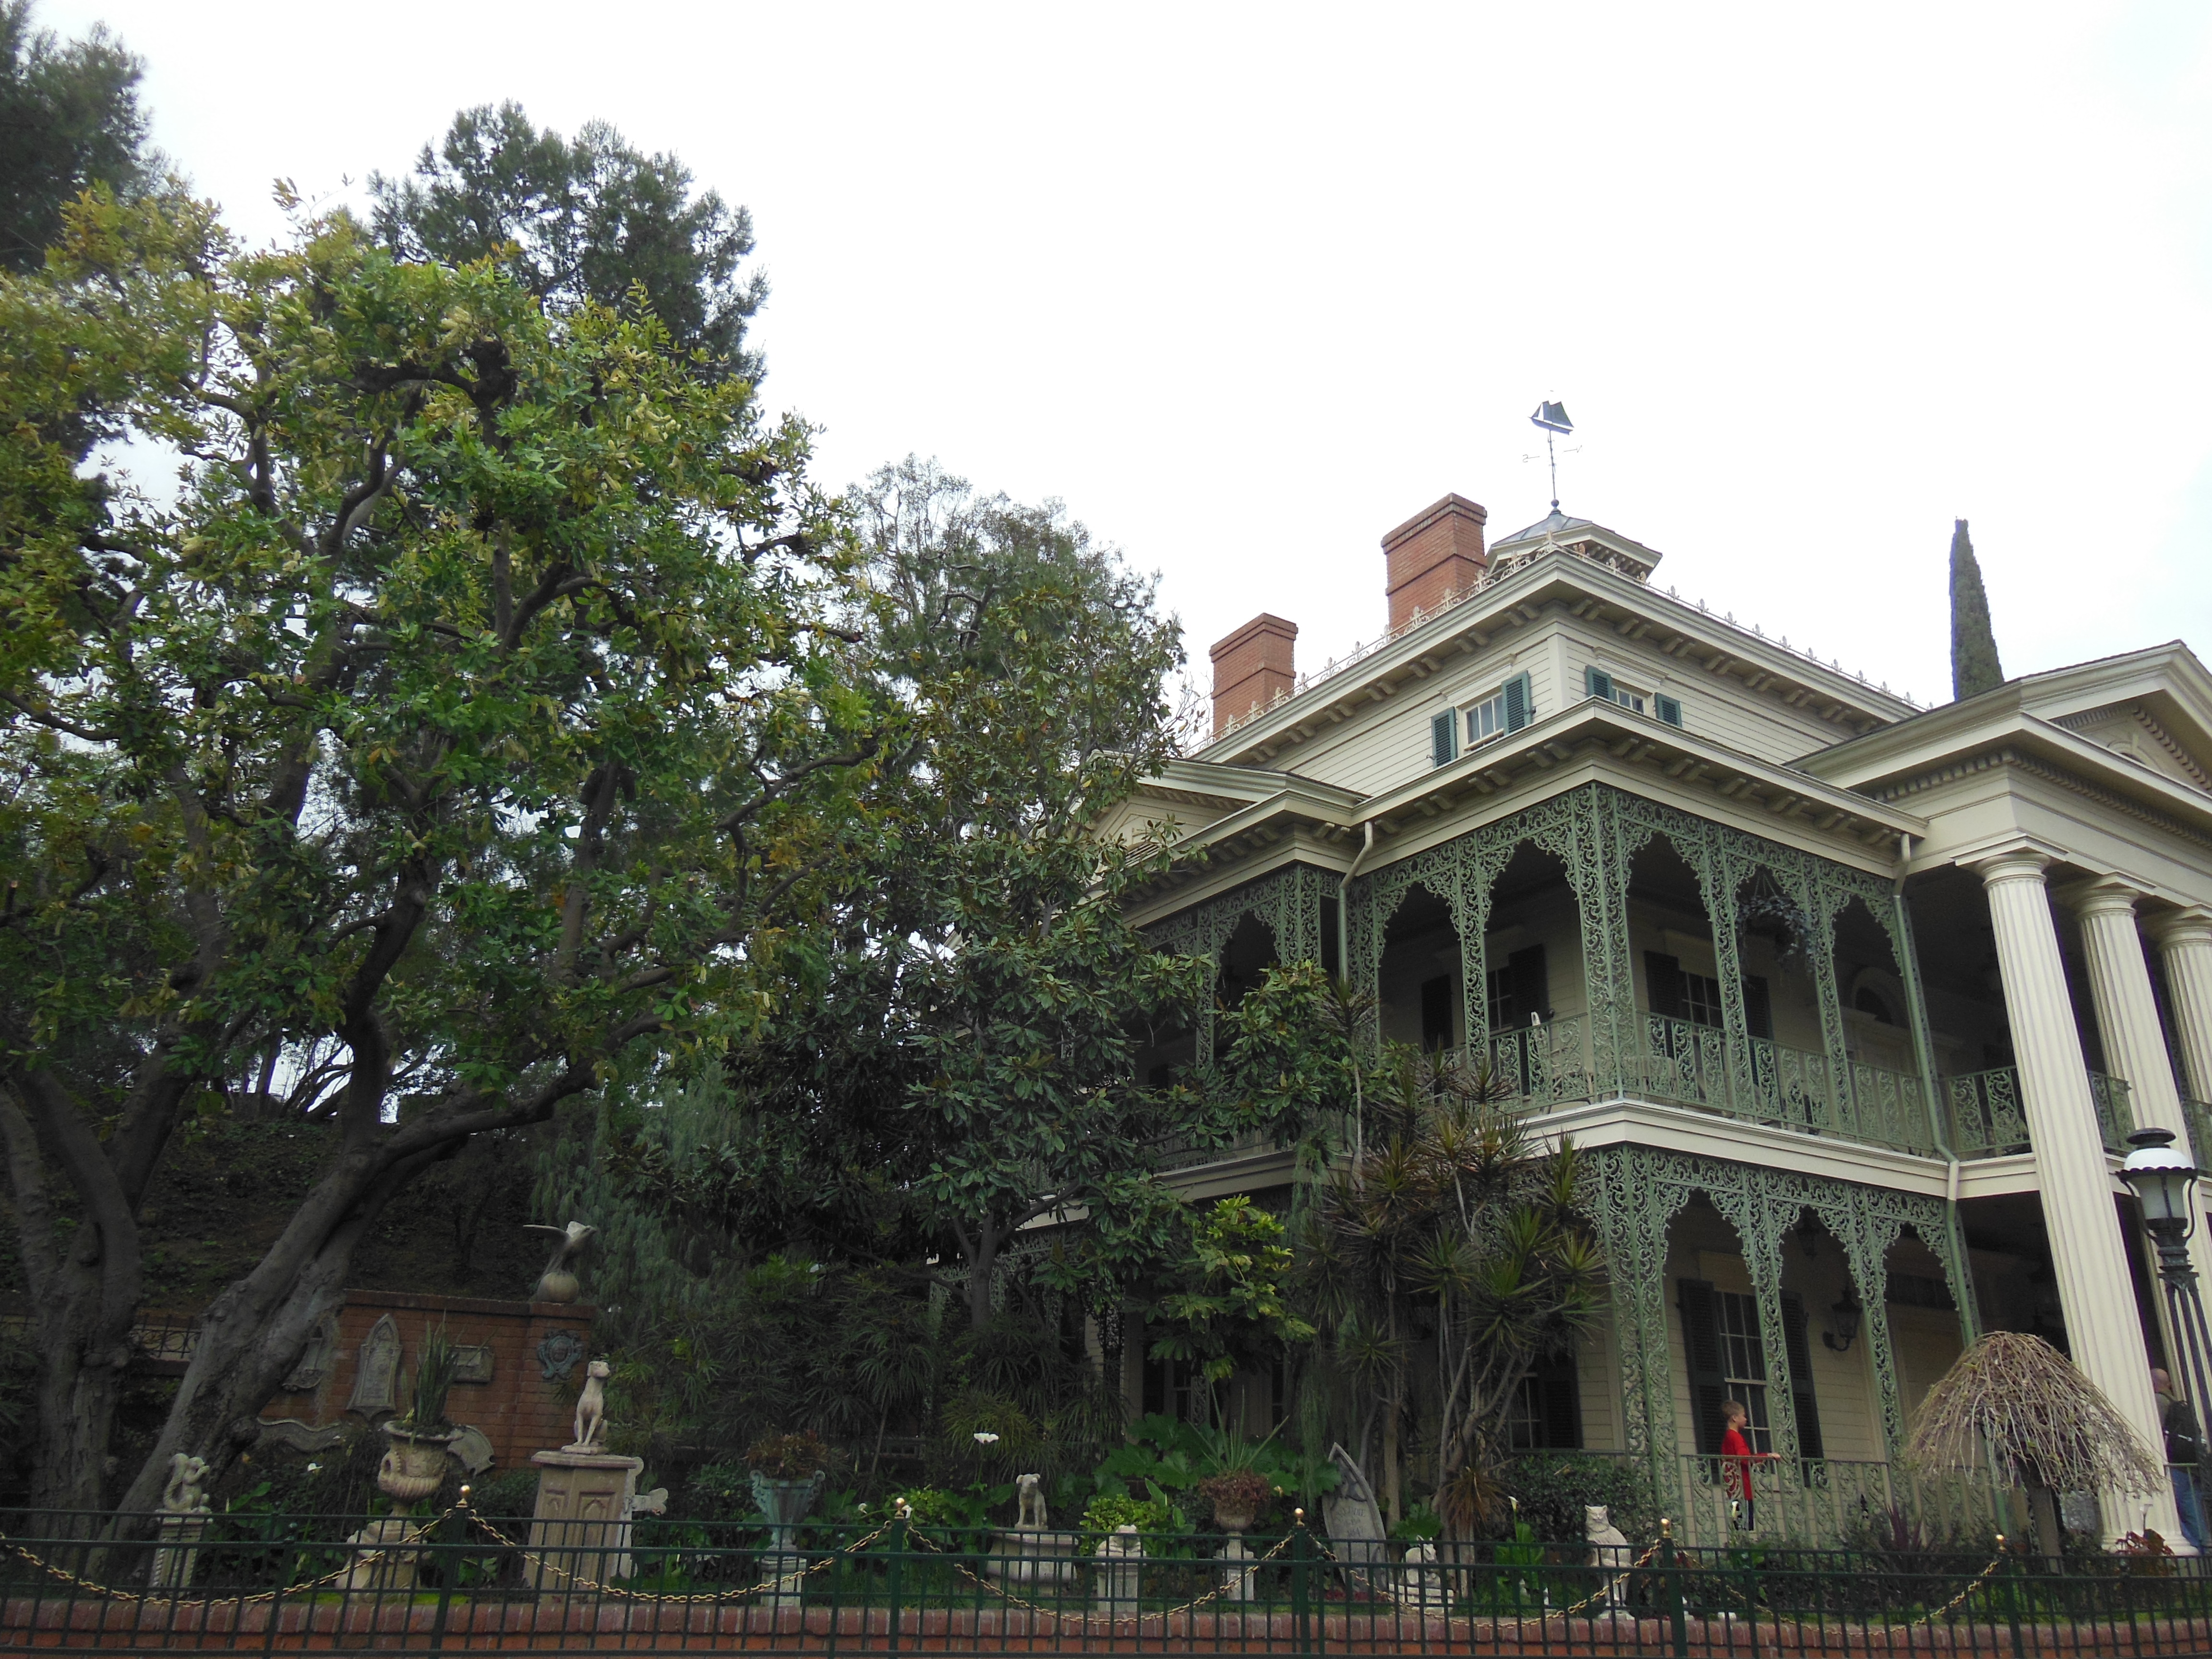 Outside of the Haunted Mansion